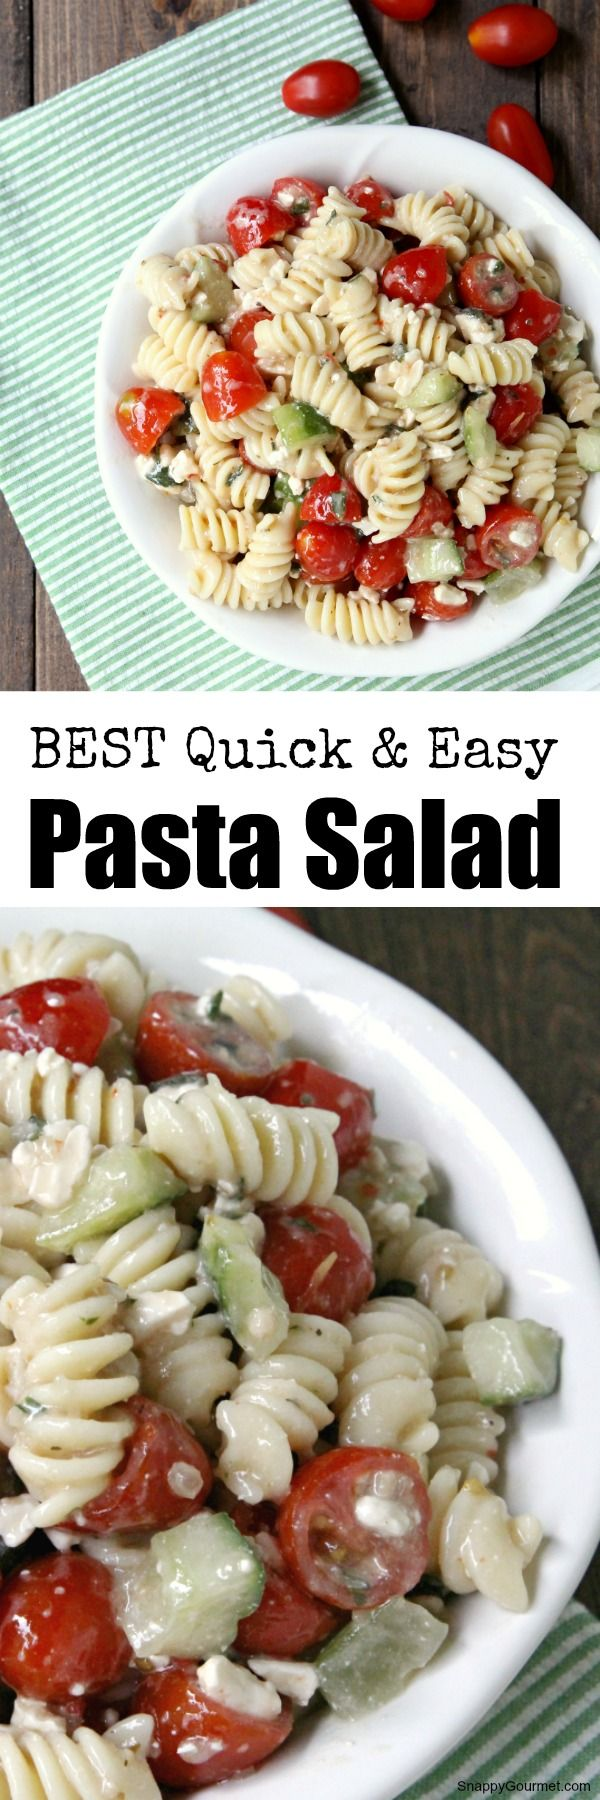 The BEST quick, easy, and simple classic summer cold pasta salad with Italian dressing and veggies! I get SO many requests for this! SnappyGourmet.com